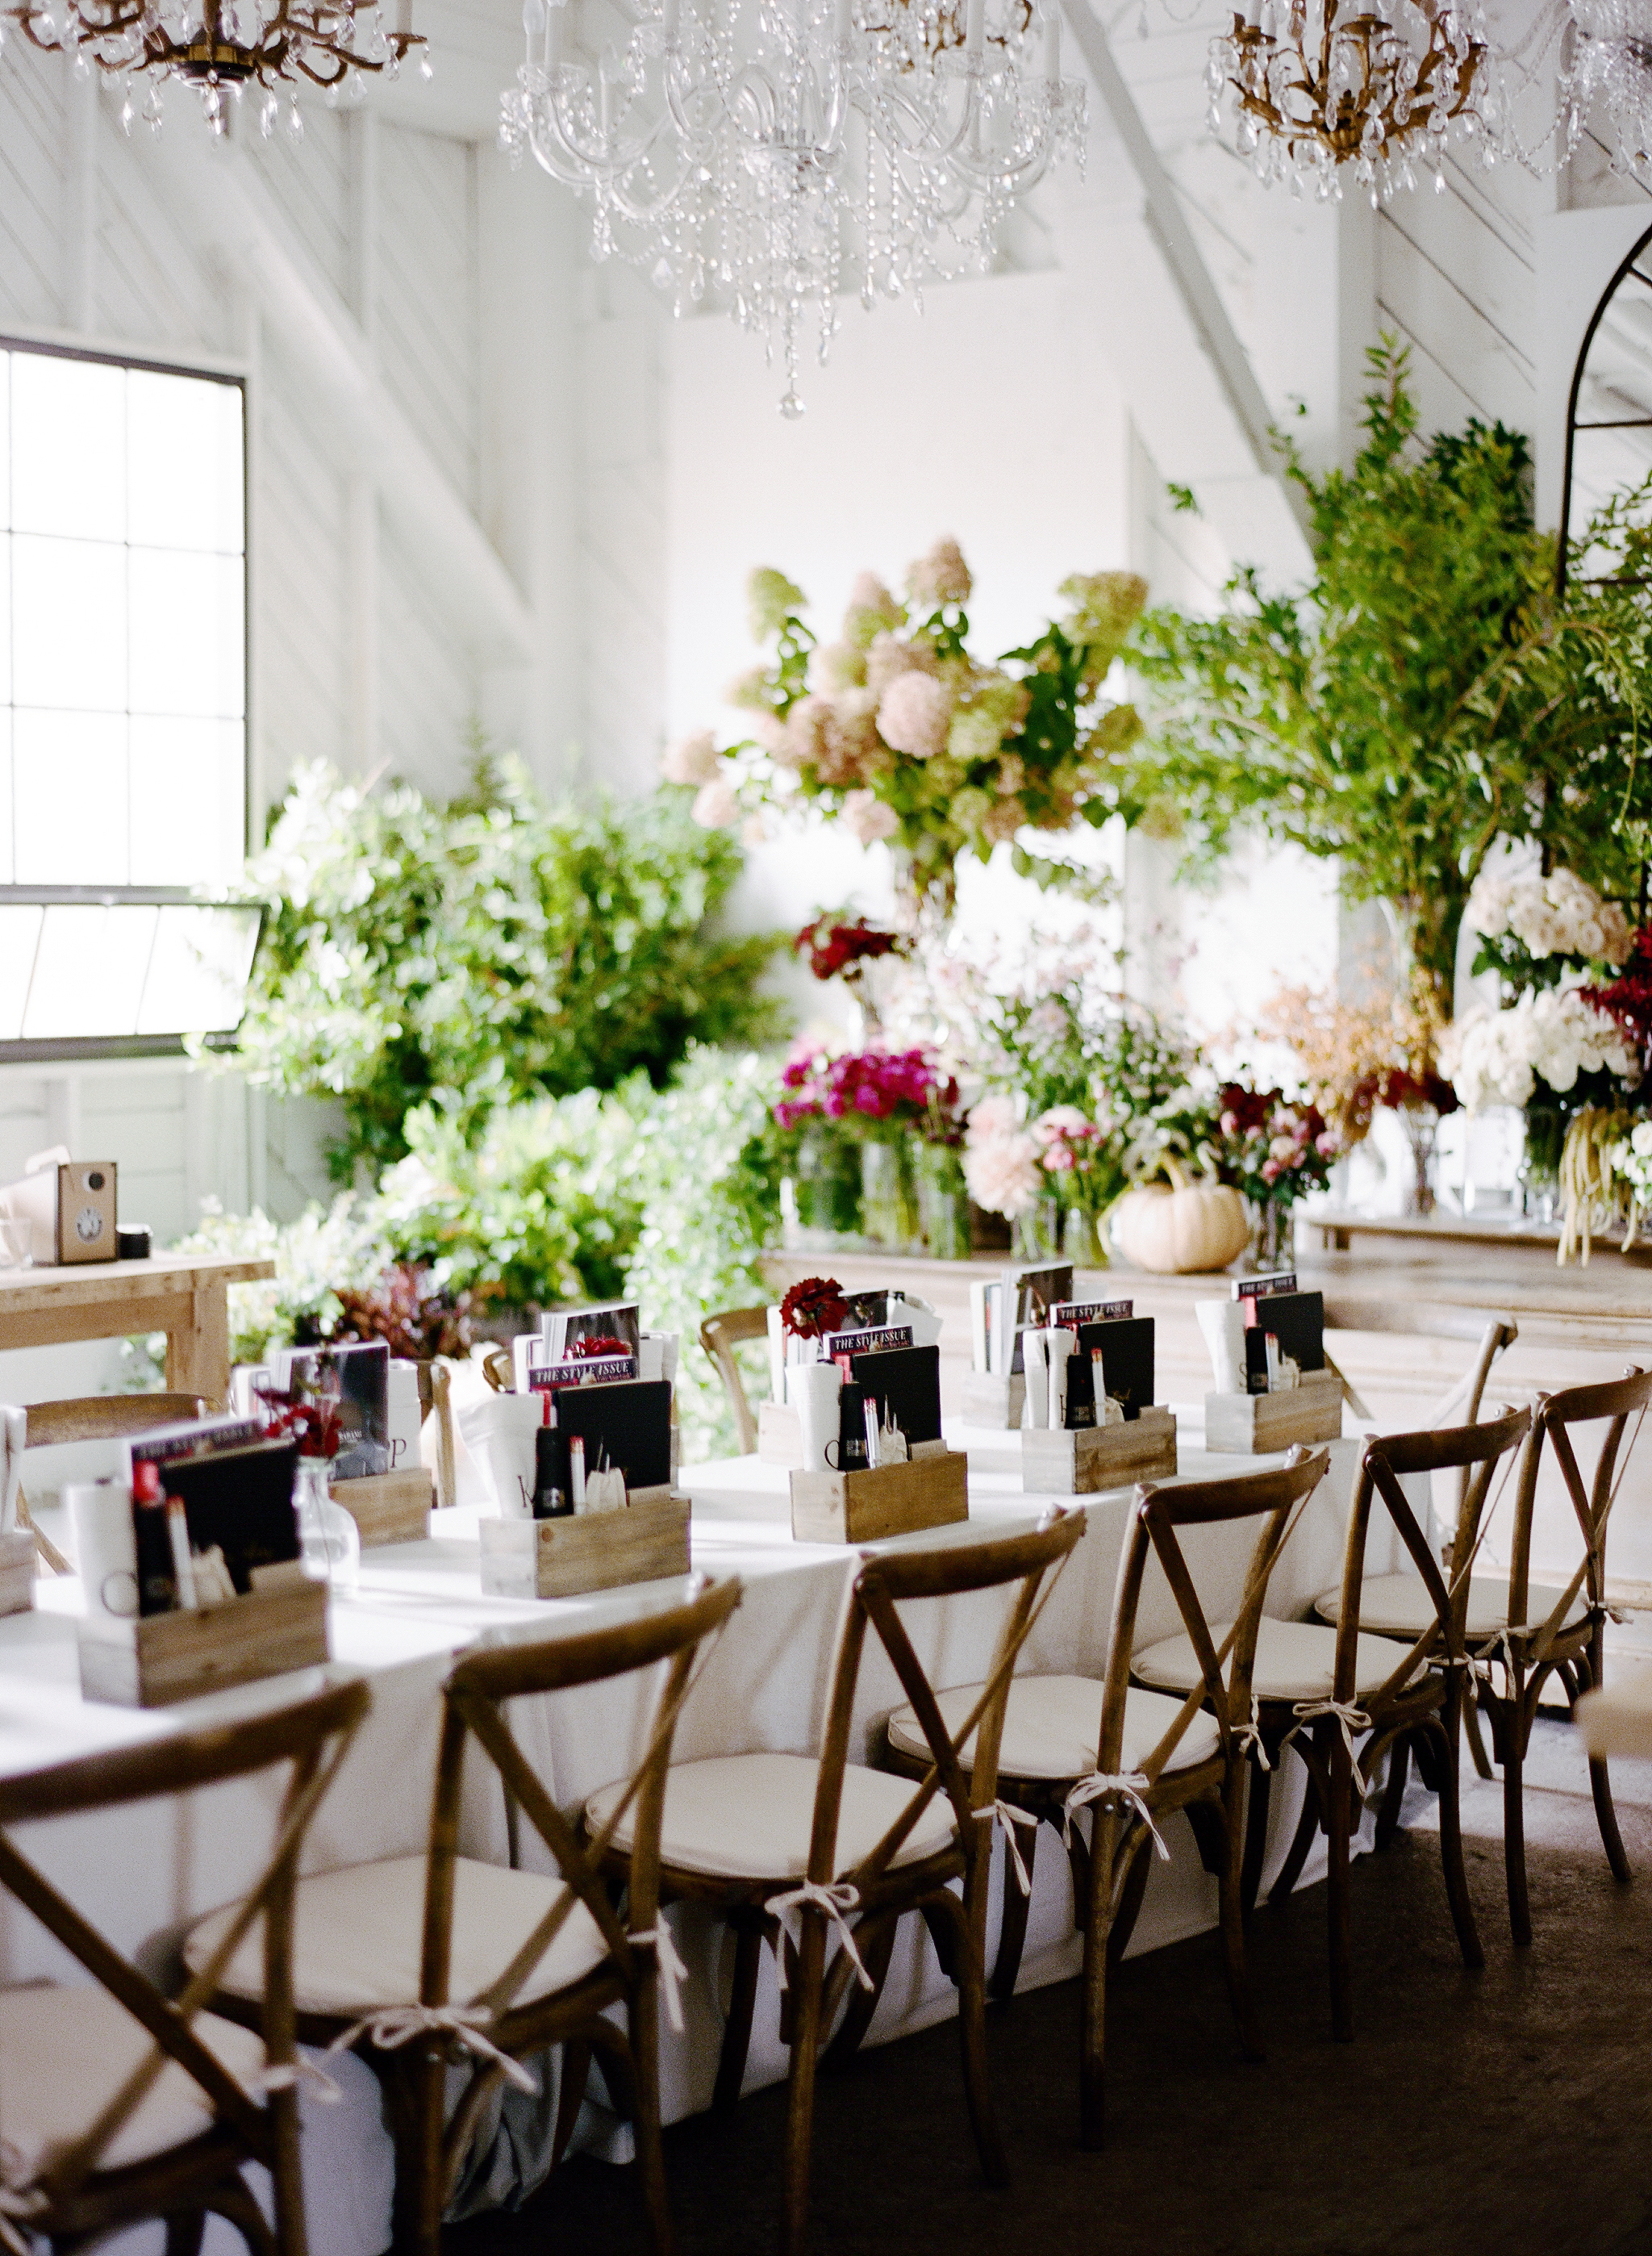 3 Leaf Floral Workshop